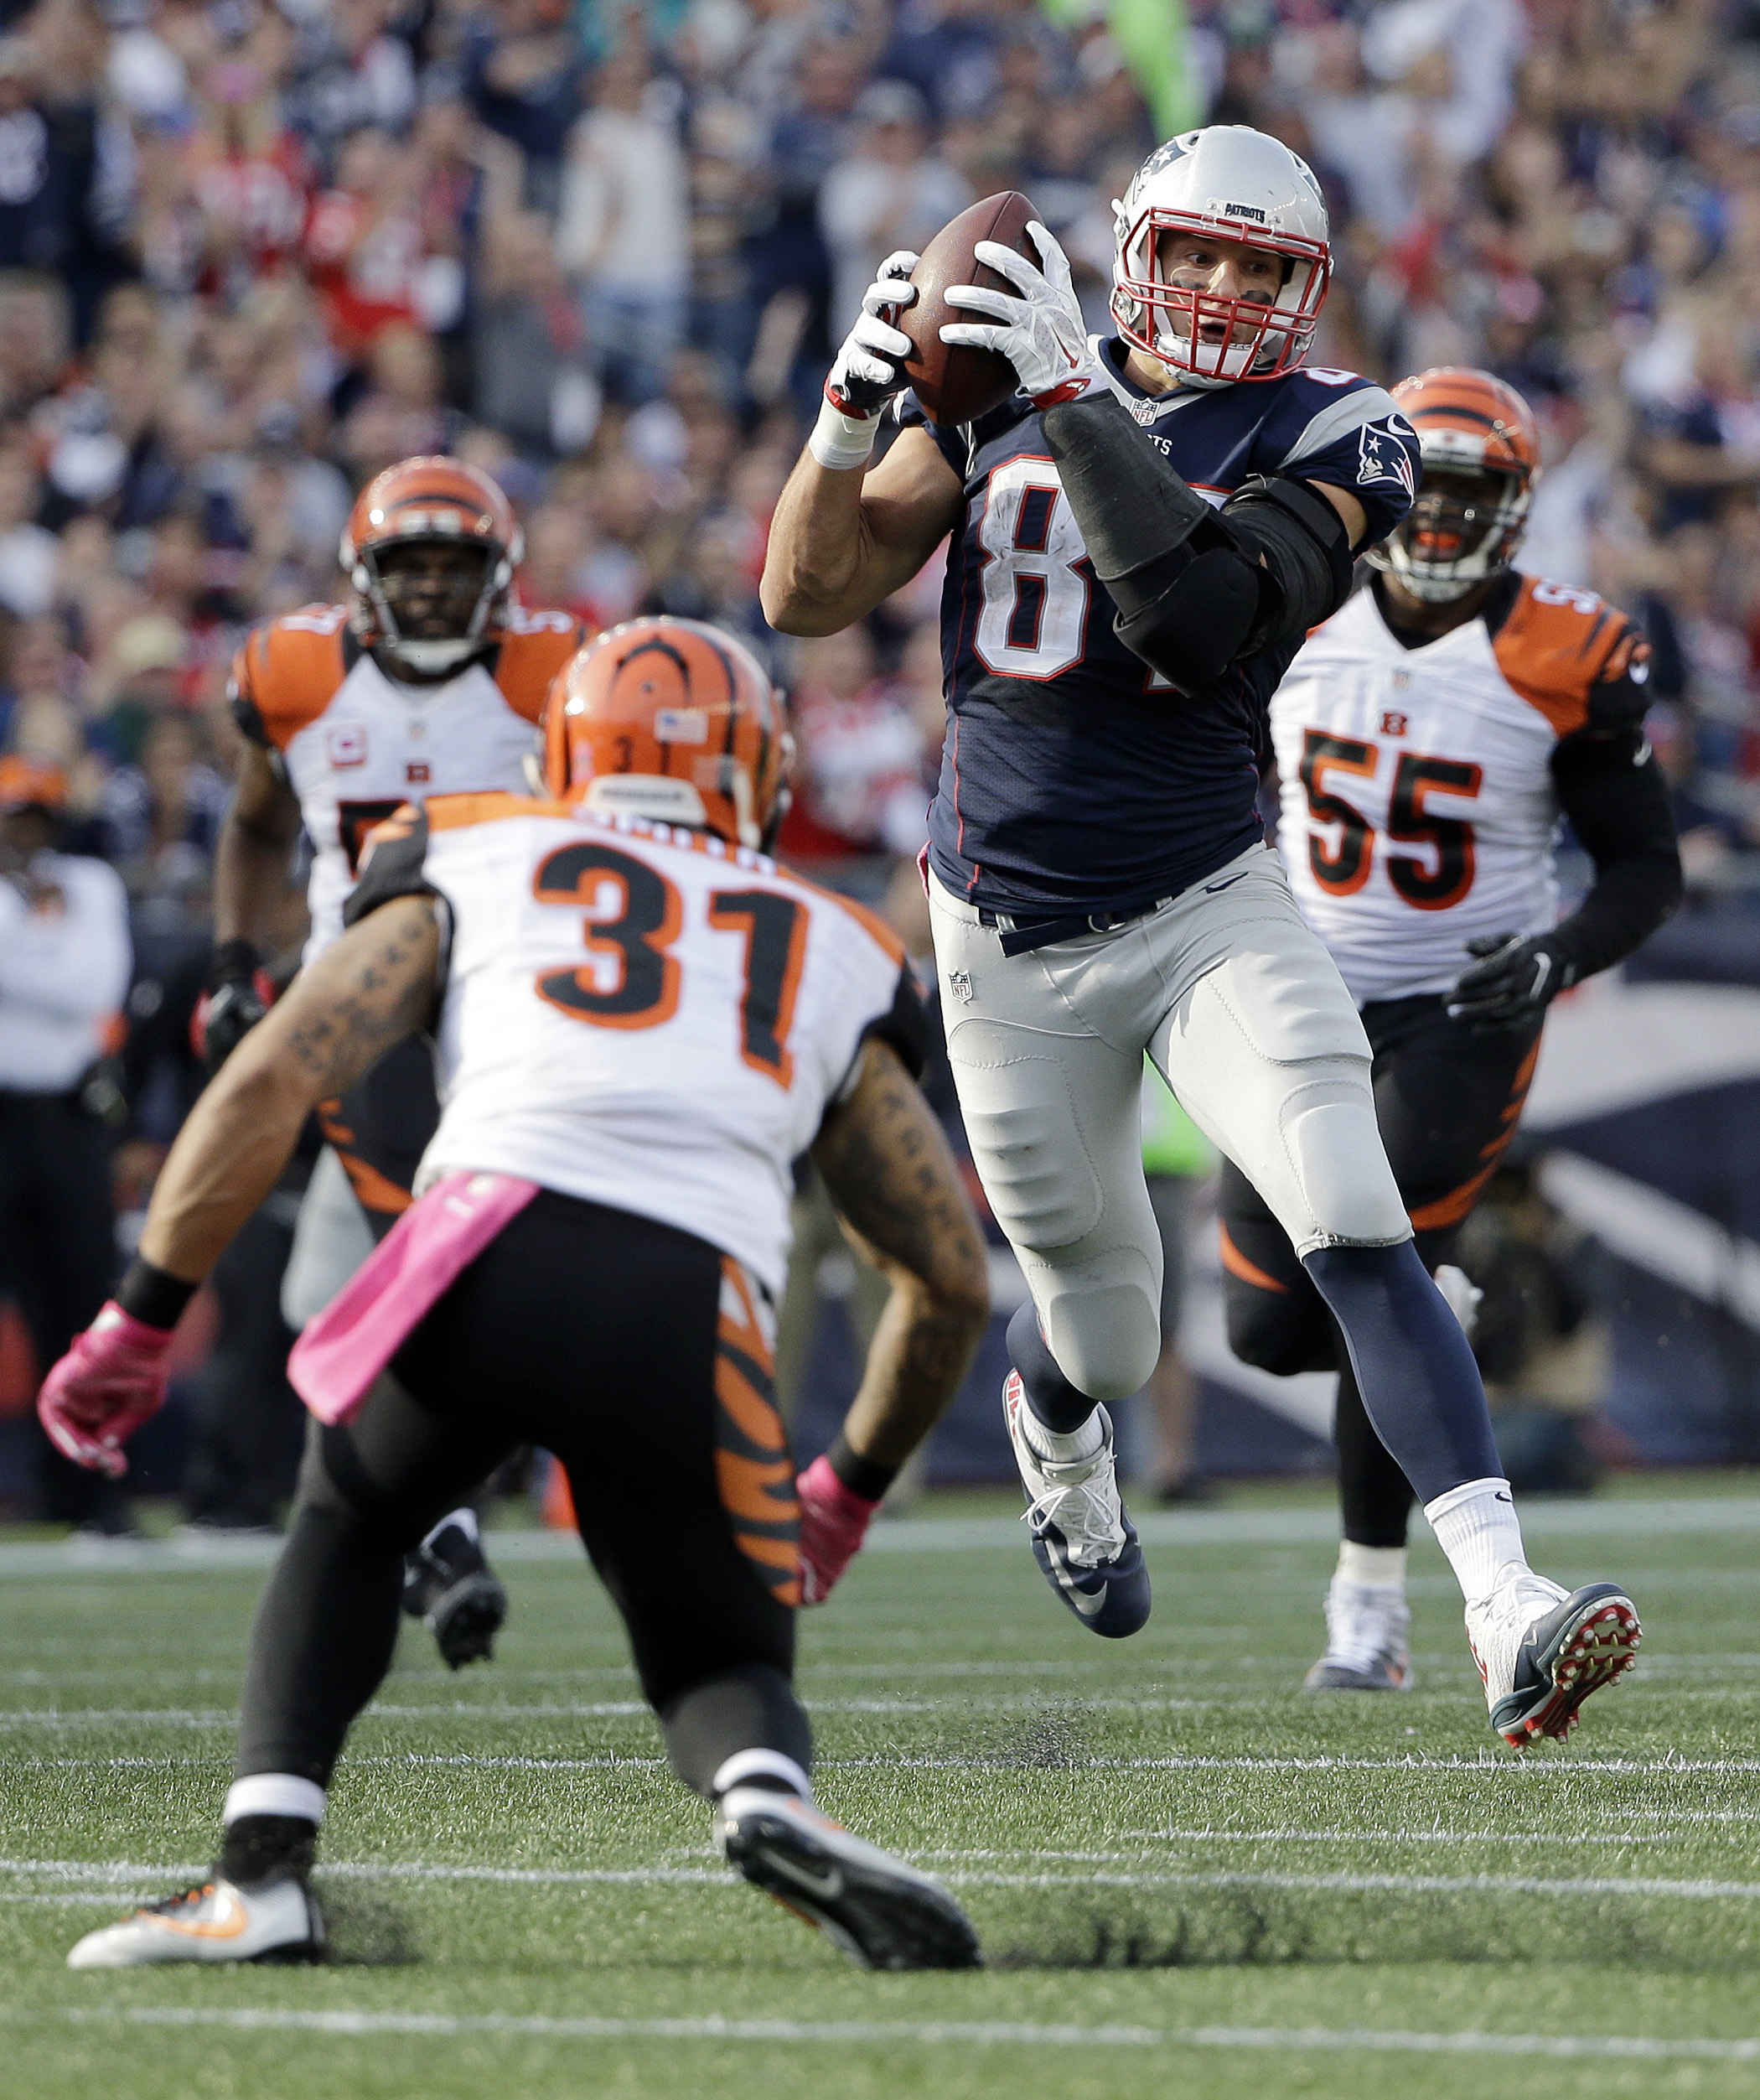 FILE - in this Oct. 16, 2016, file photo, New England Patriots tight end Rob Gronkowski (87) catches a pass between Cincinnati Bengals safety Derron Smith (31) and linebacker Vontaze Burfict (55) during anNFL football game in Foxborough, Mass. The Patriot